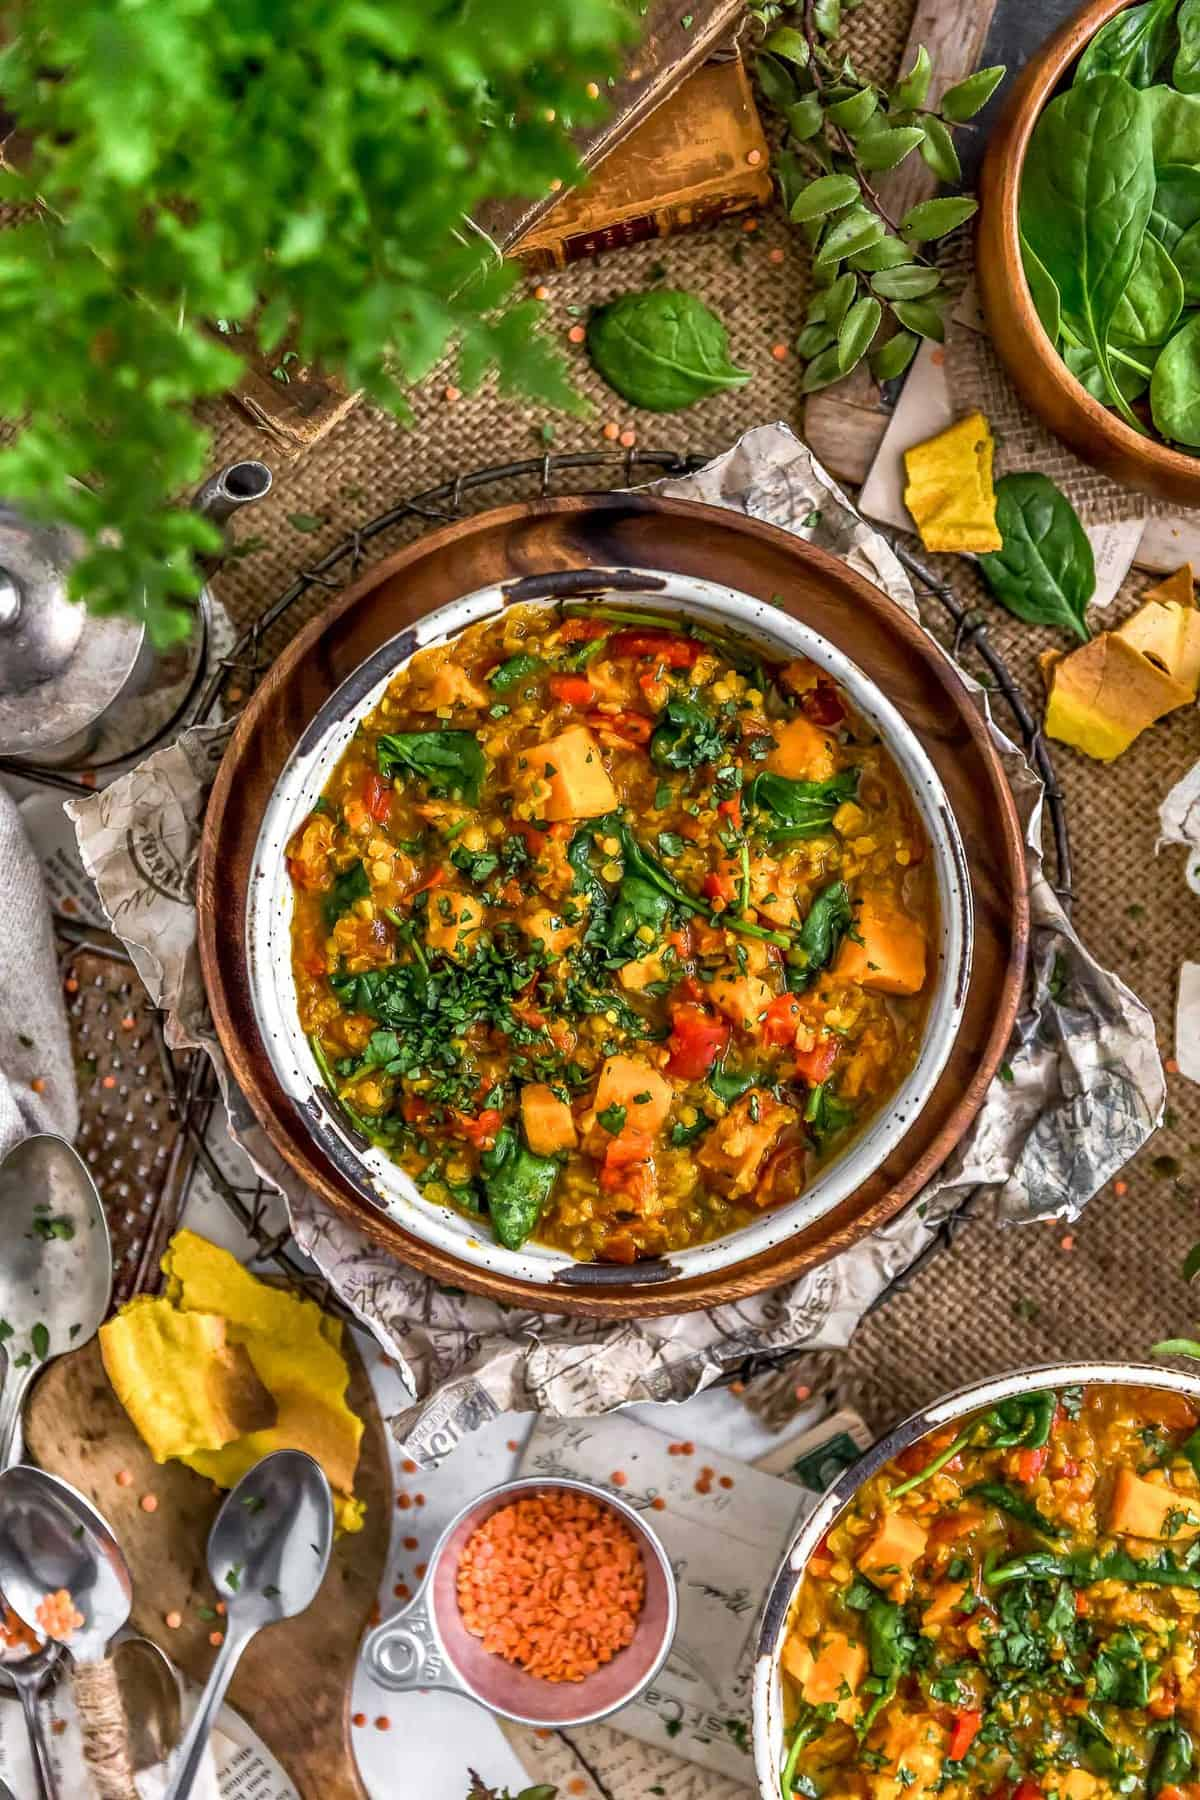 Tablescape of Curried Red Lentil and Sweet Potato Stew